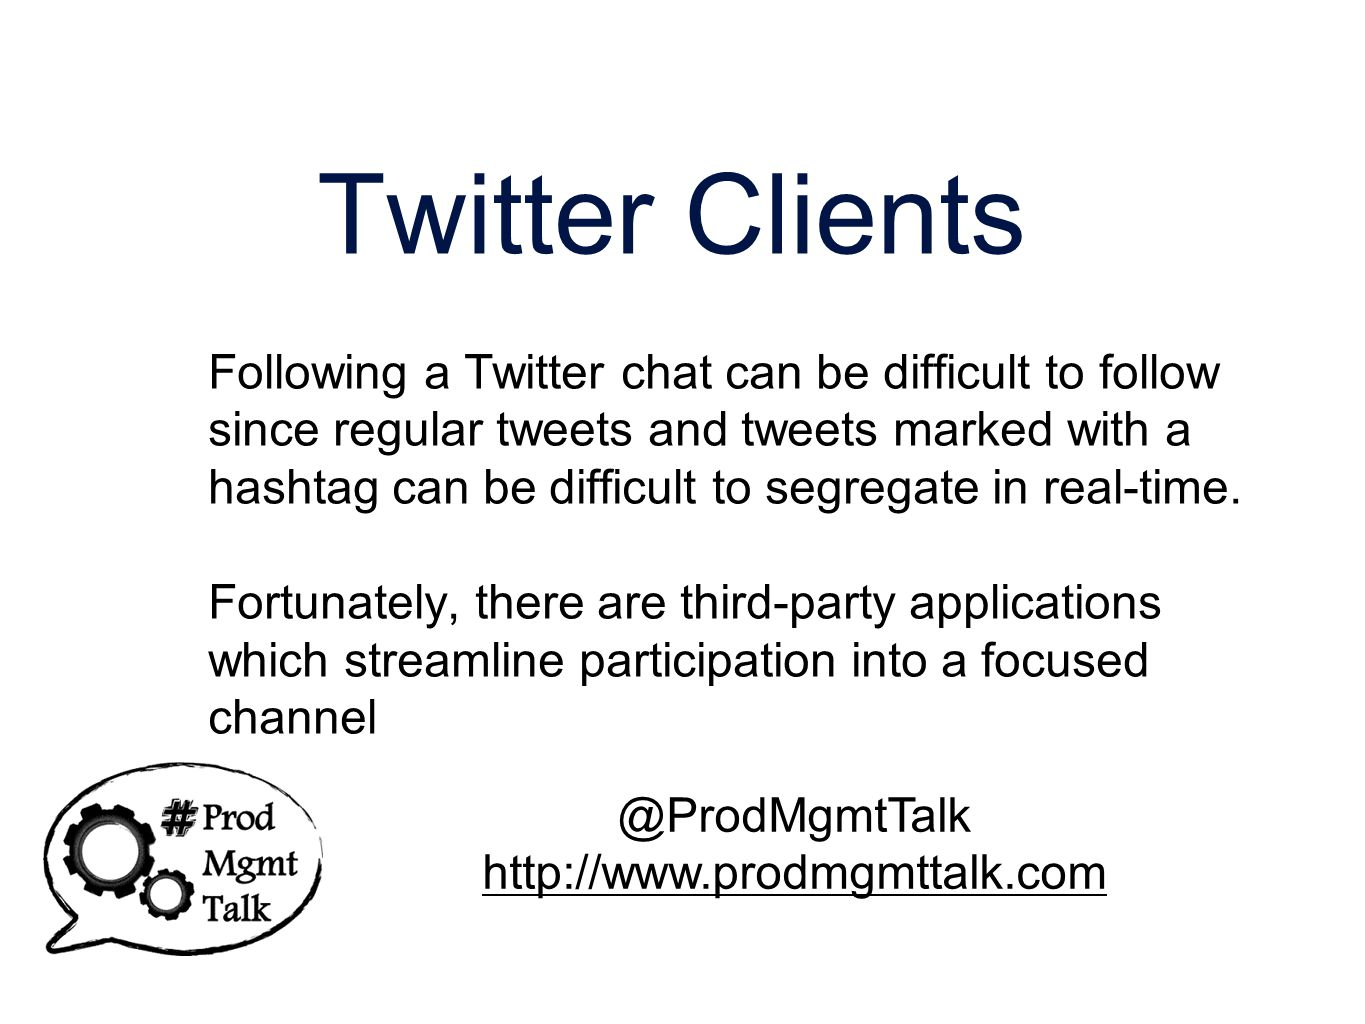 Twitter Clients Following a Twitter chat can be difficult to follow since regular tweets and tweets marked with a hashtag can be difficult to segregate in real-time.